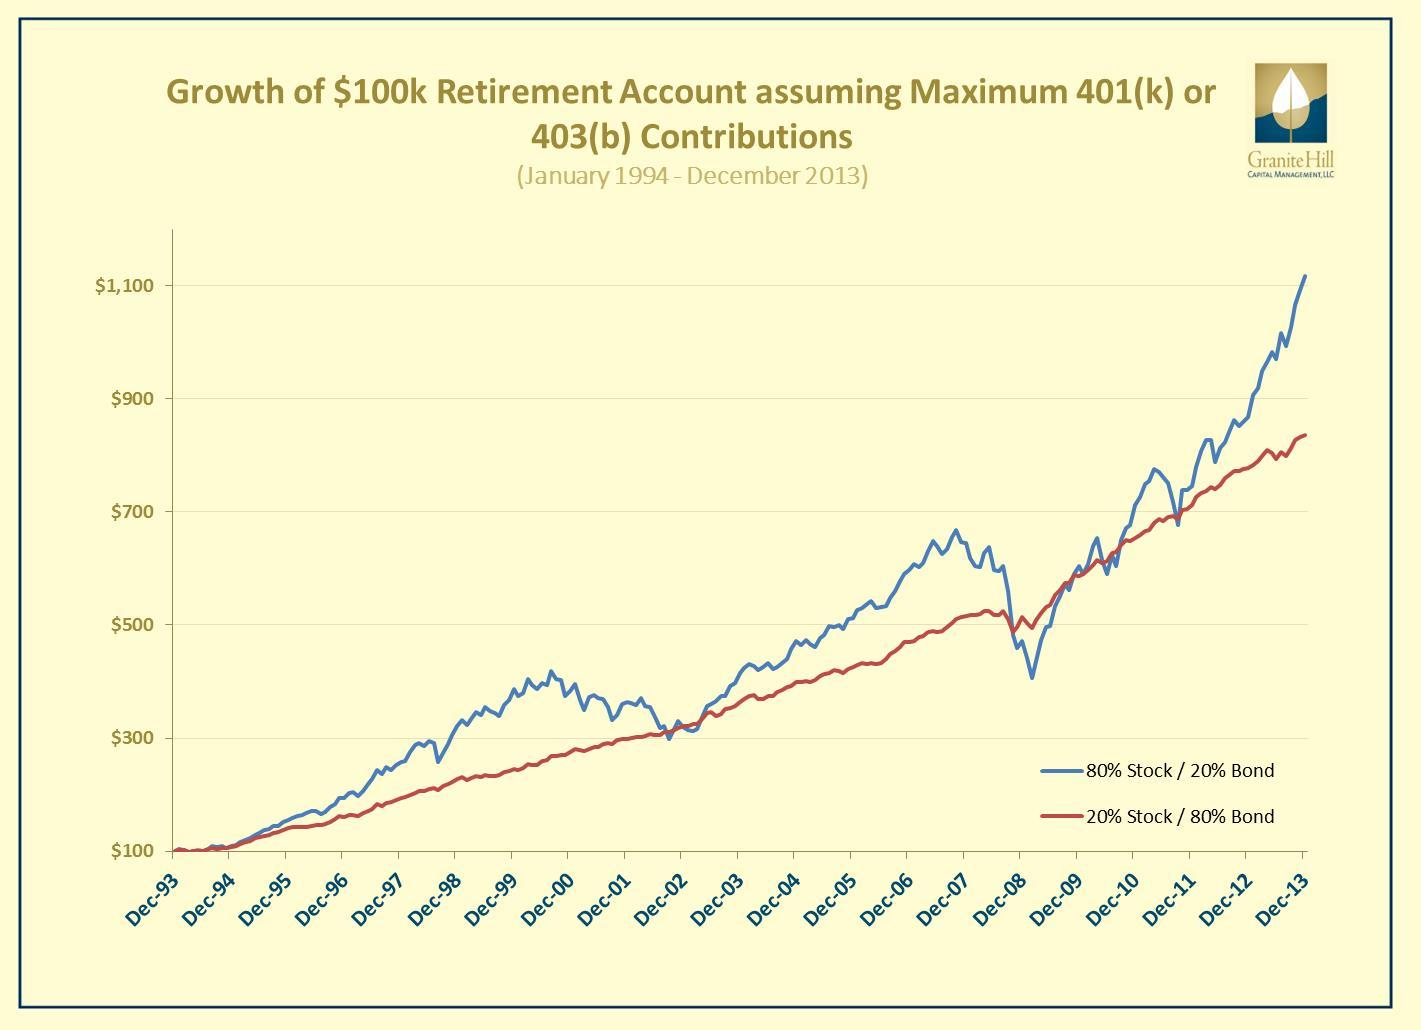 Growth of $100k Retirement Account over 20 years assuming Maximum Contributions